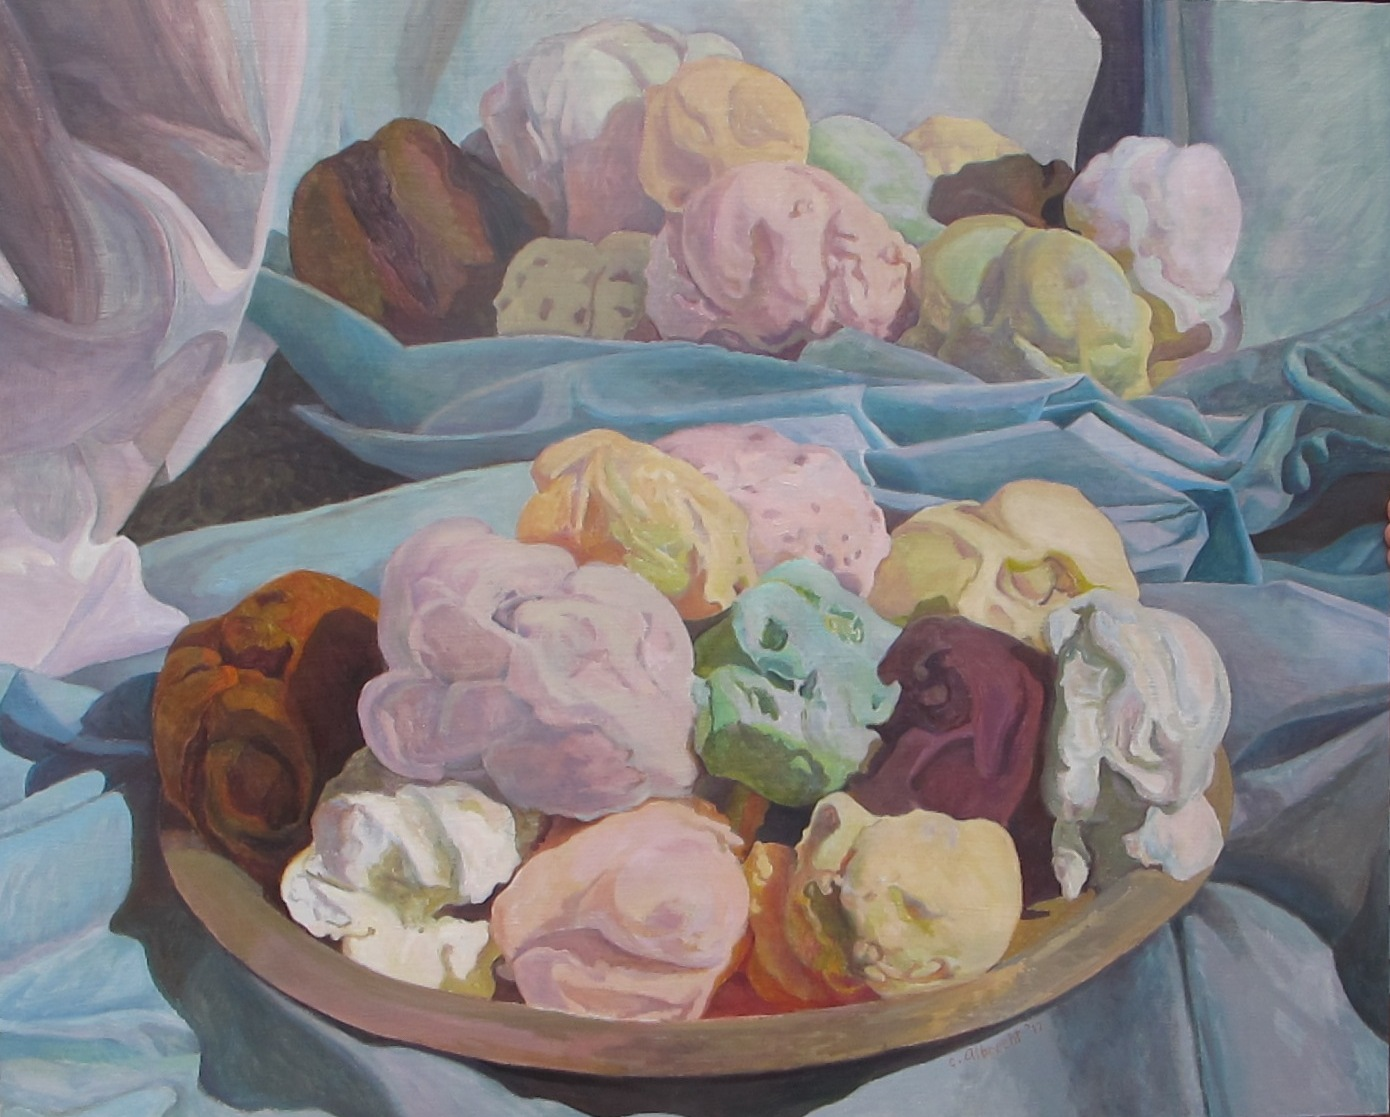 13+Delicious+Scoops+40x32.jpeg